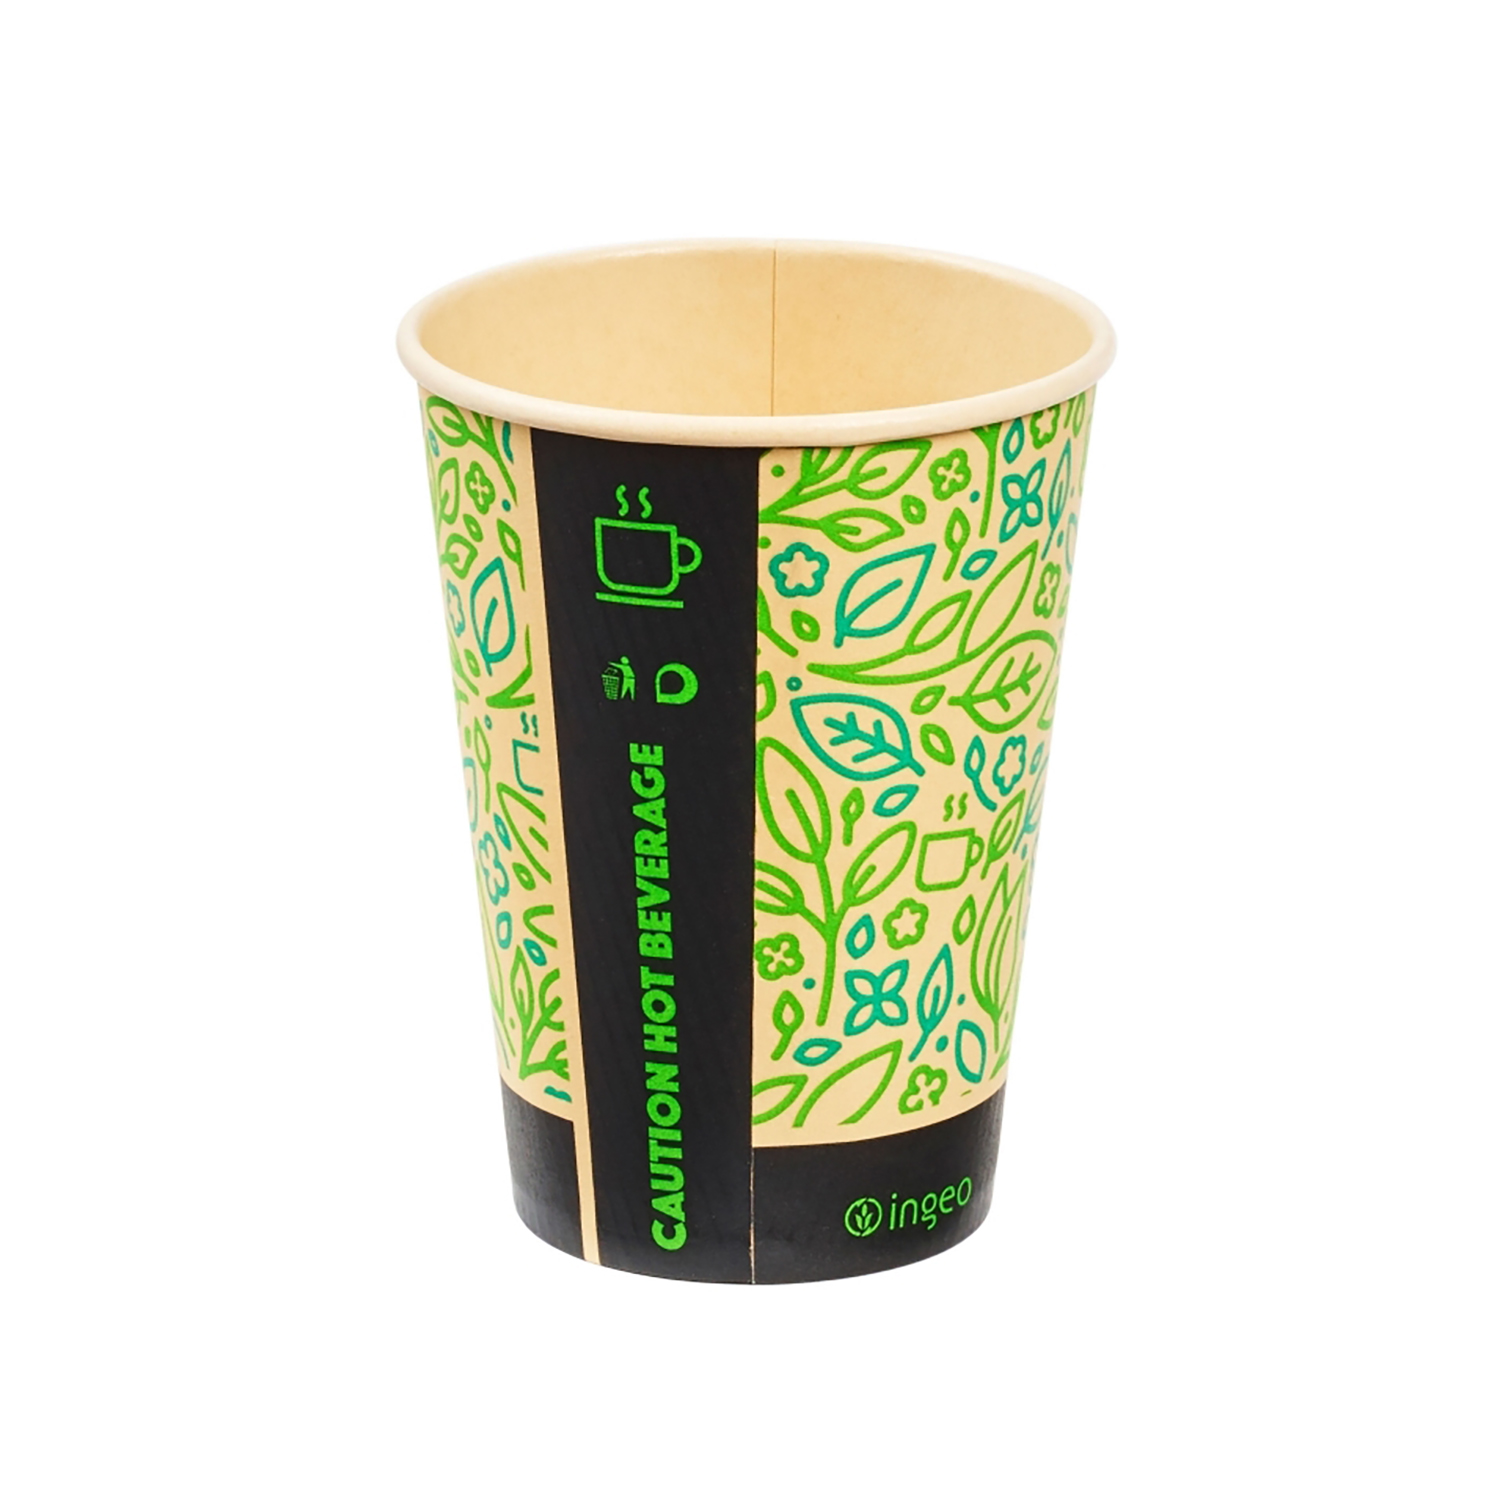 Domestic disposable cups or glasses or lids Ingeo Ultimate Eco Bamboo 12oz Biodegradable Disposable Cups Ref 0511224 [Pack 25]